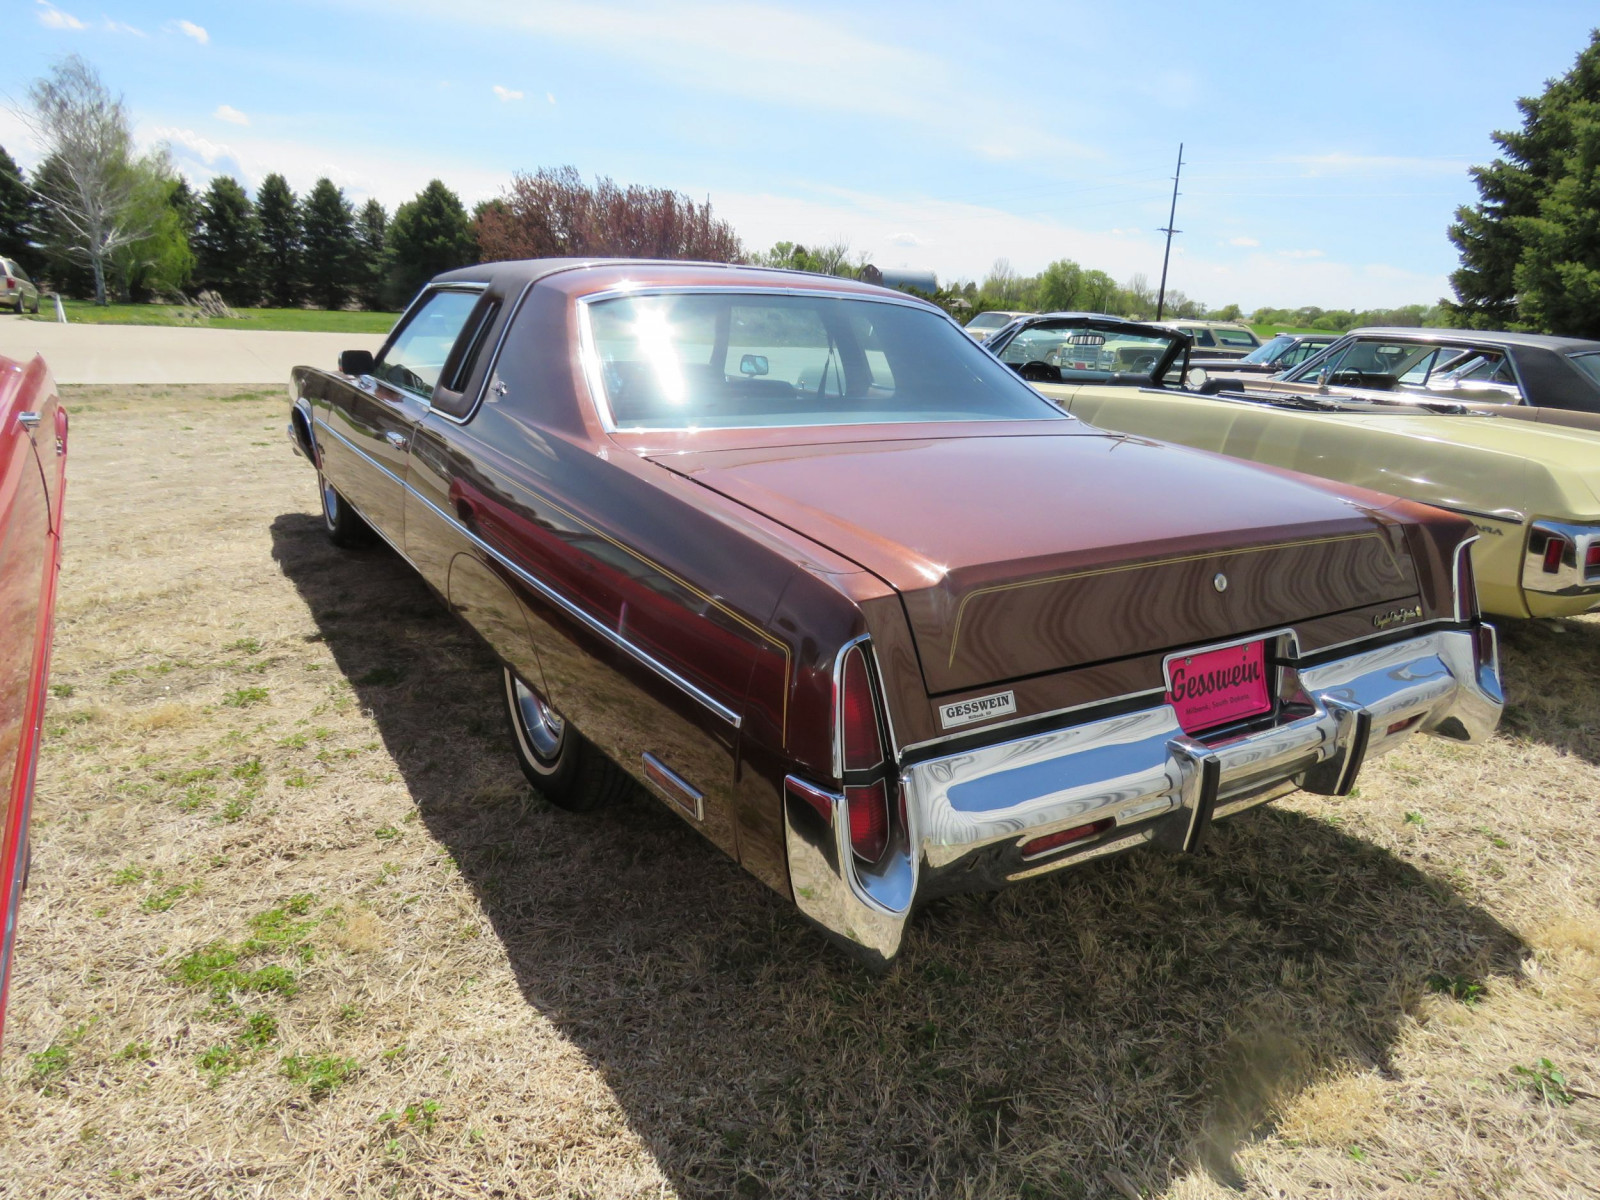 1977 Chrysler New Yorker Brougham with ST. Regis package - Image 10